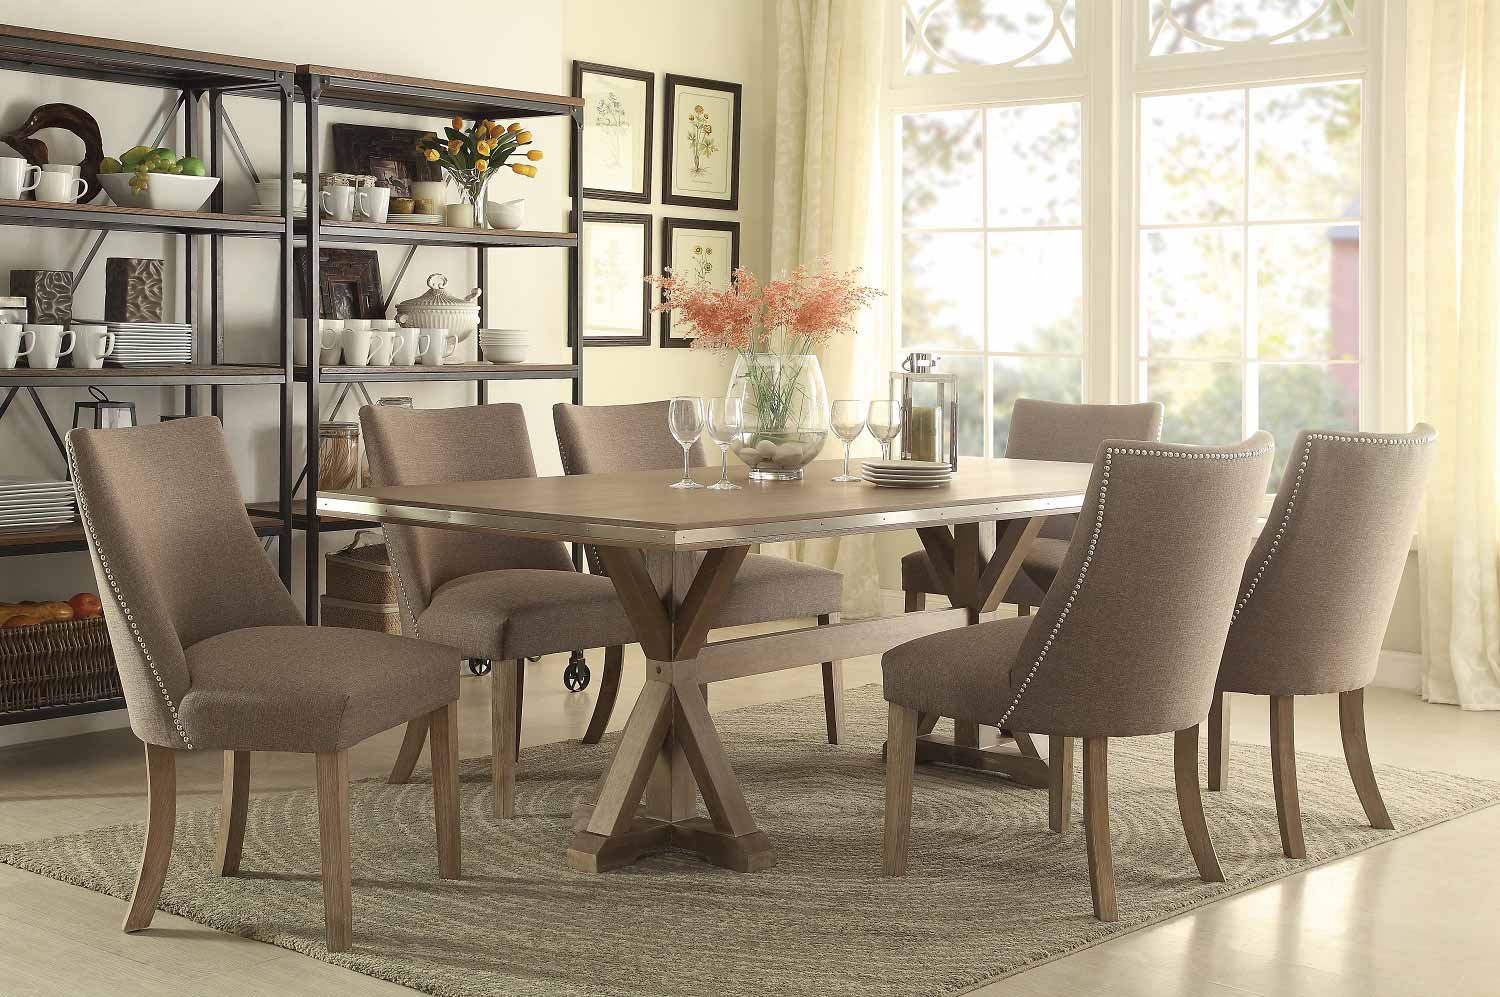 Homelegance Beaugrand Dining Set - Brown